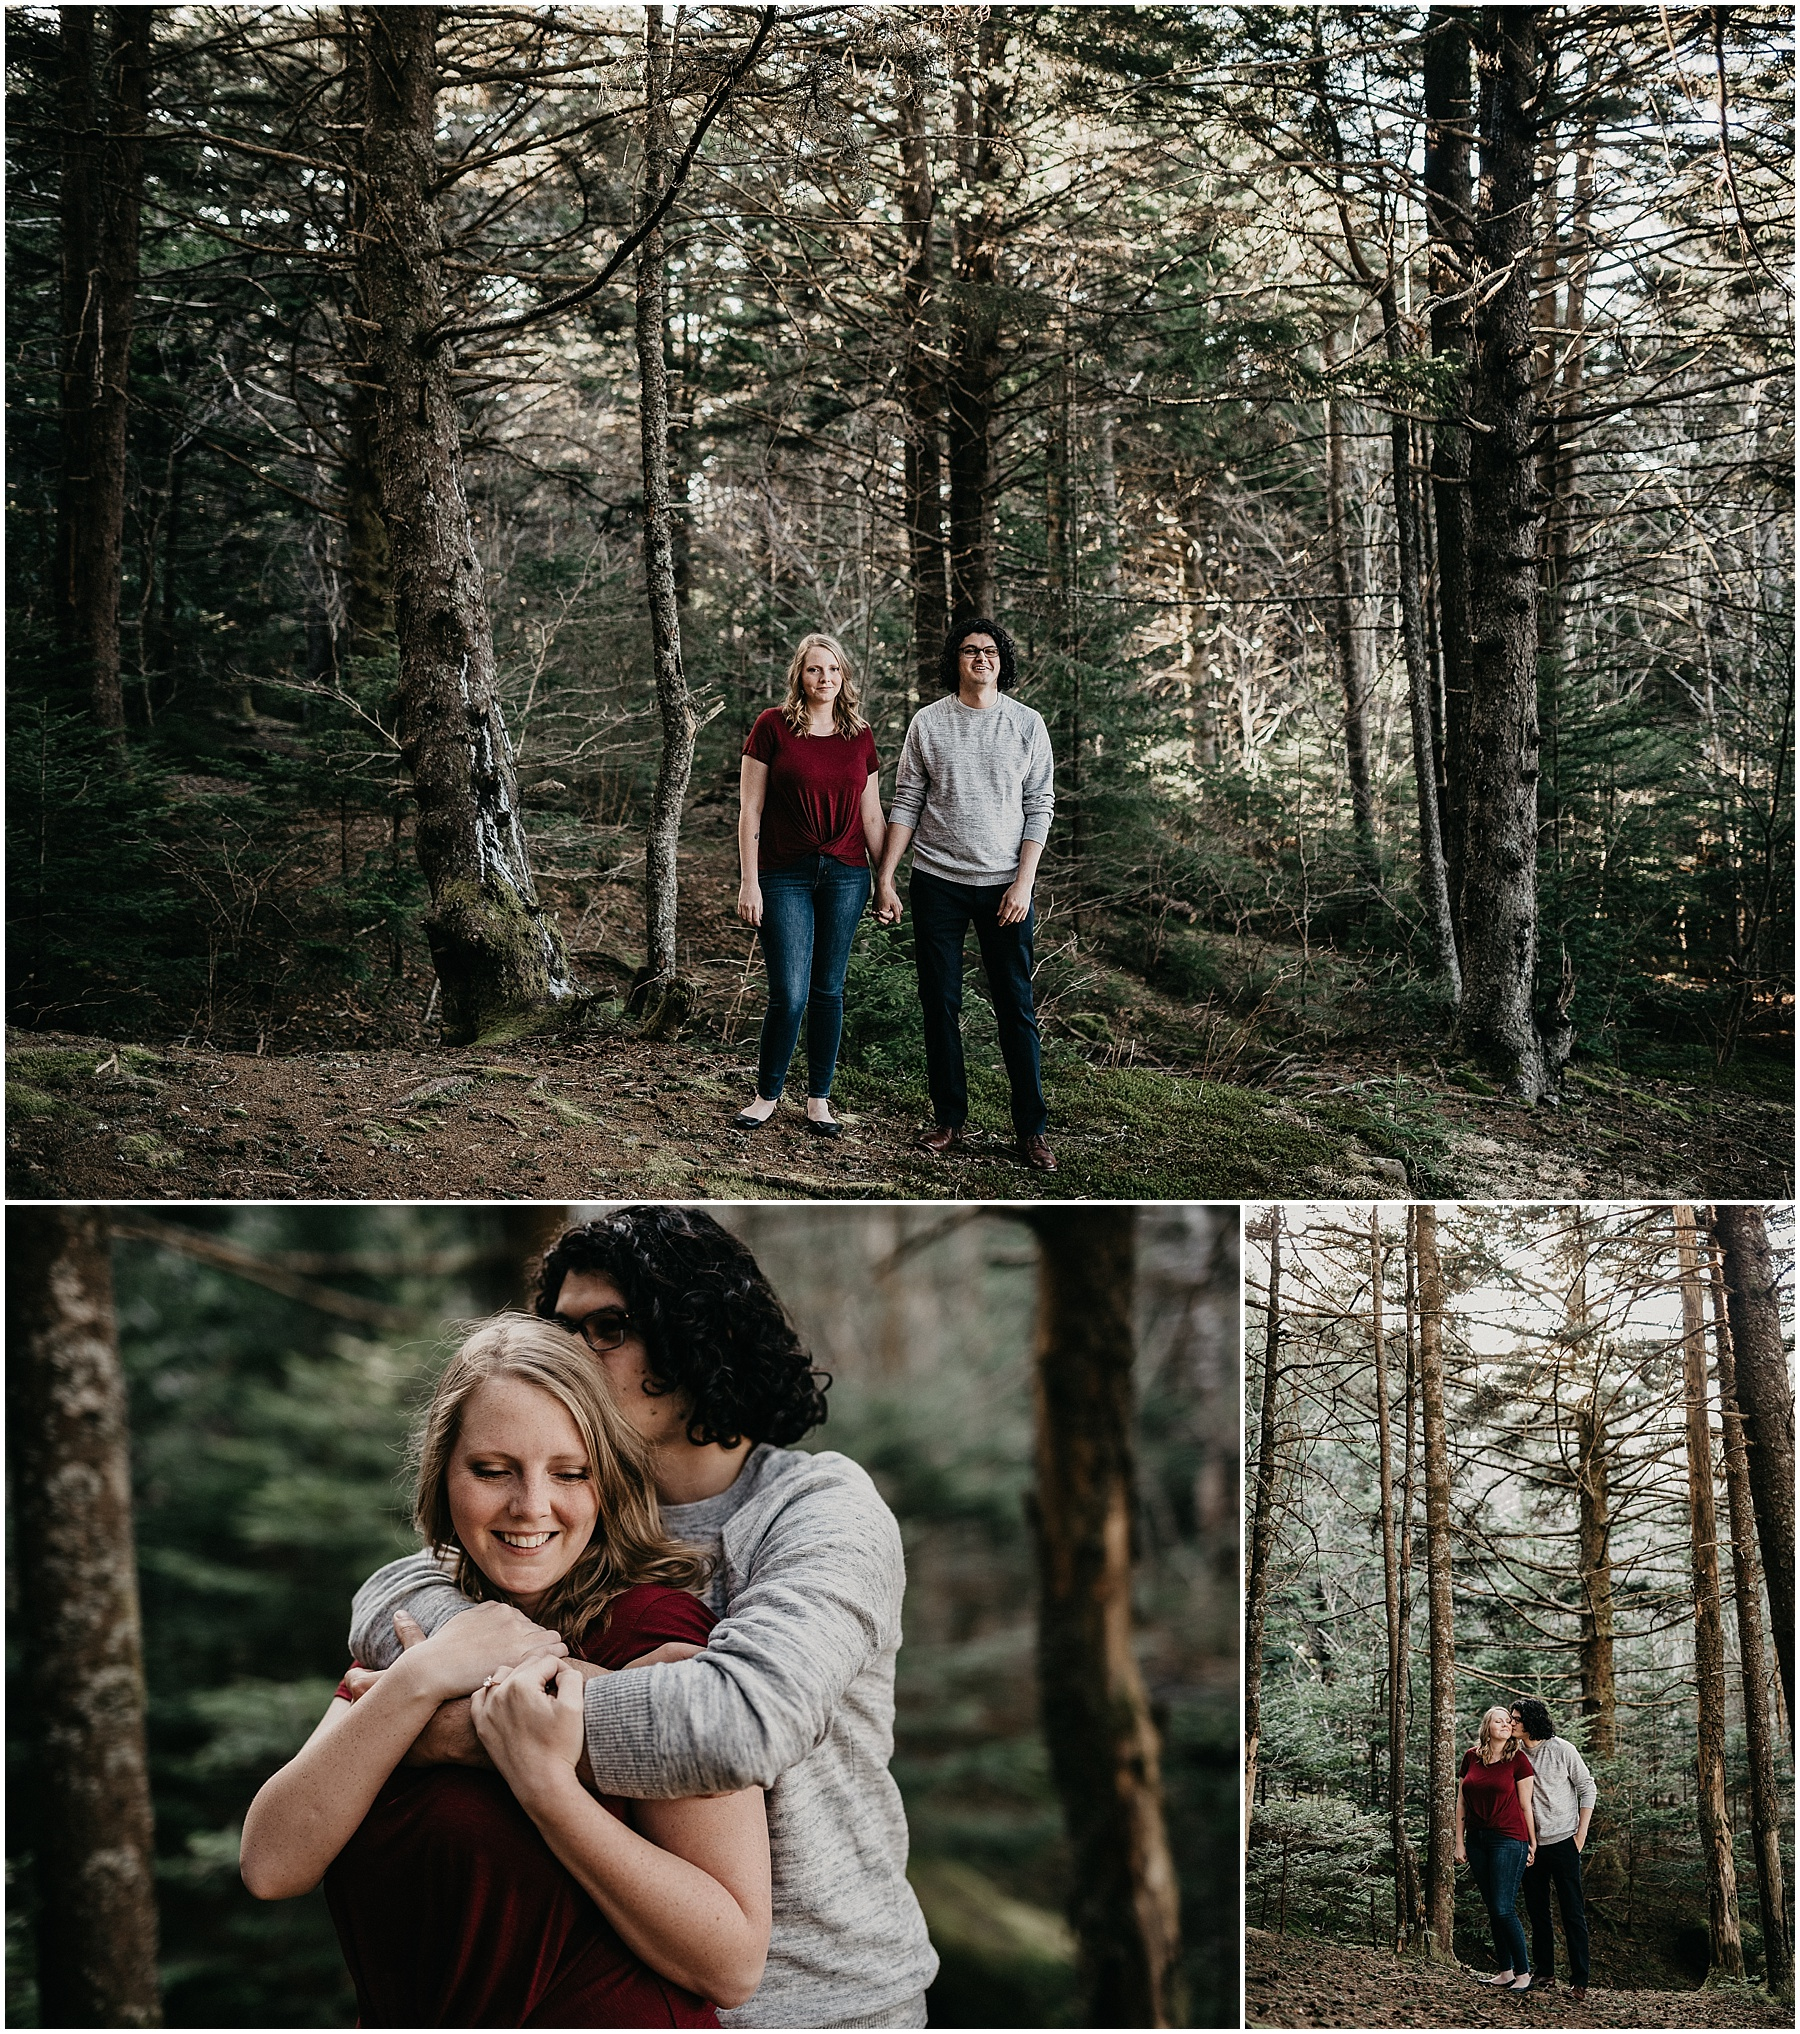 Boone_Engagement_Photographer_03.jpg